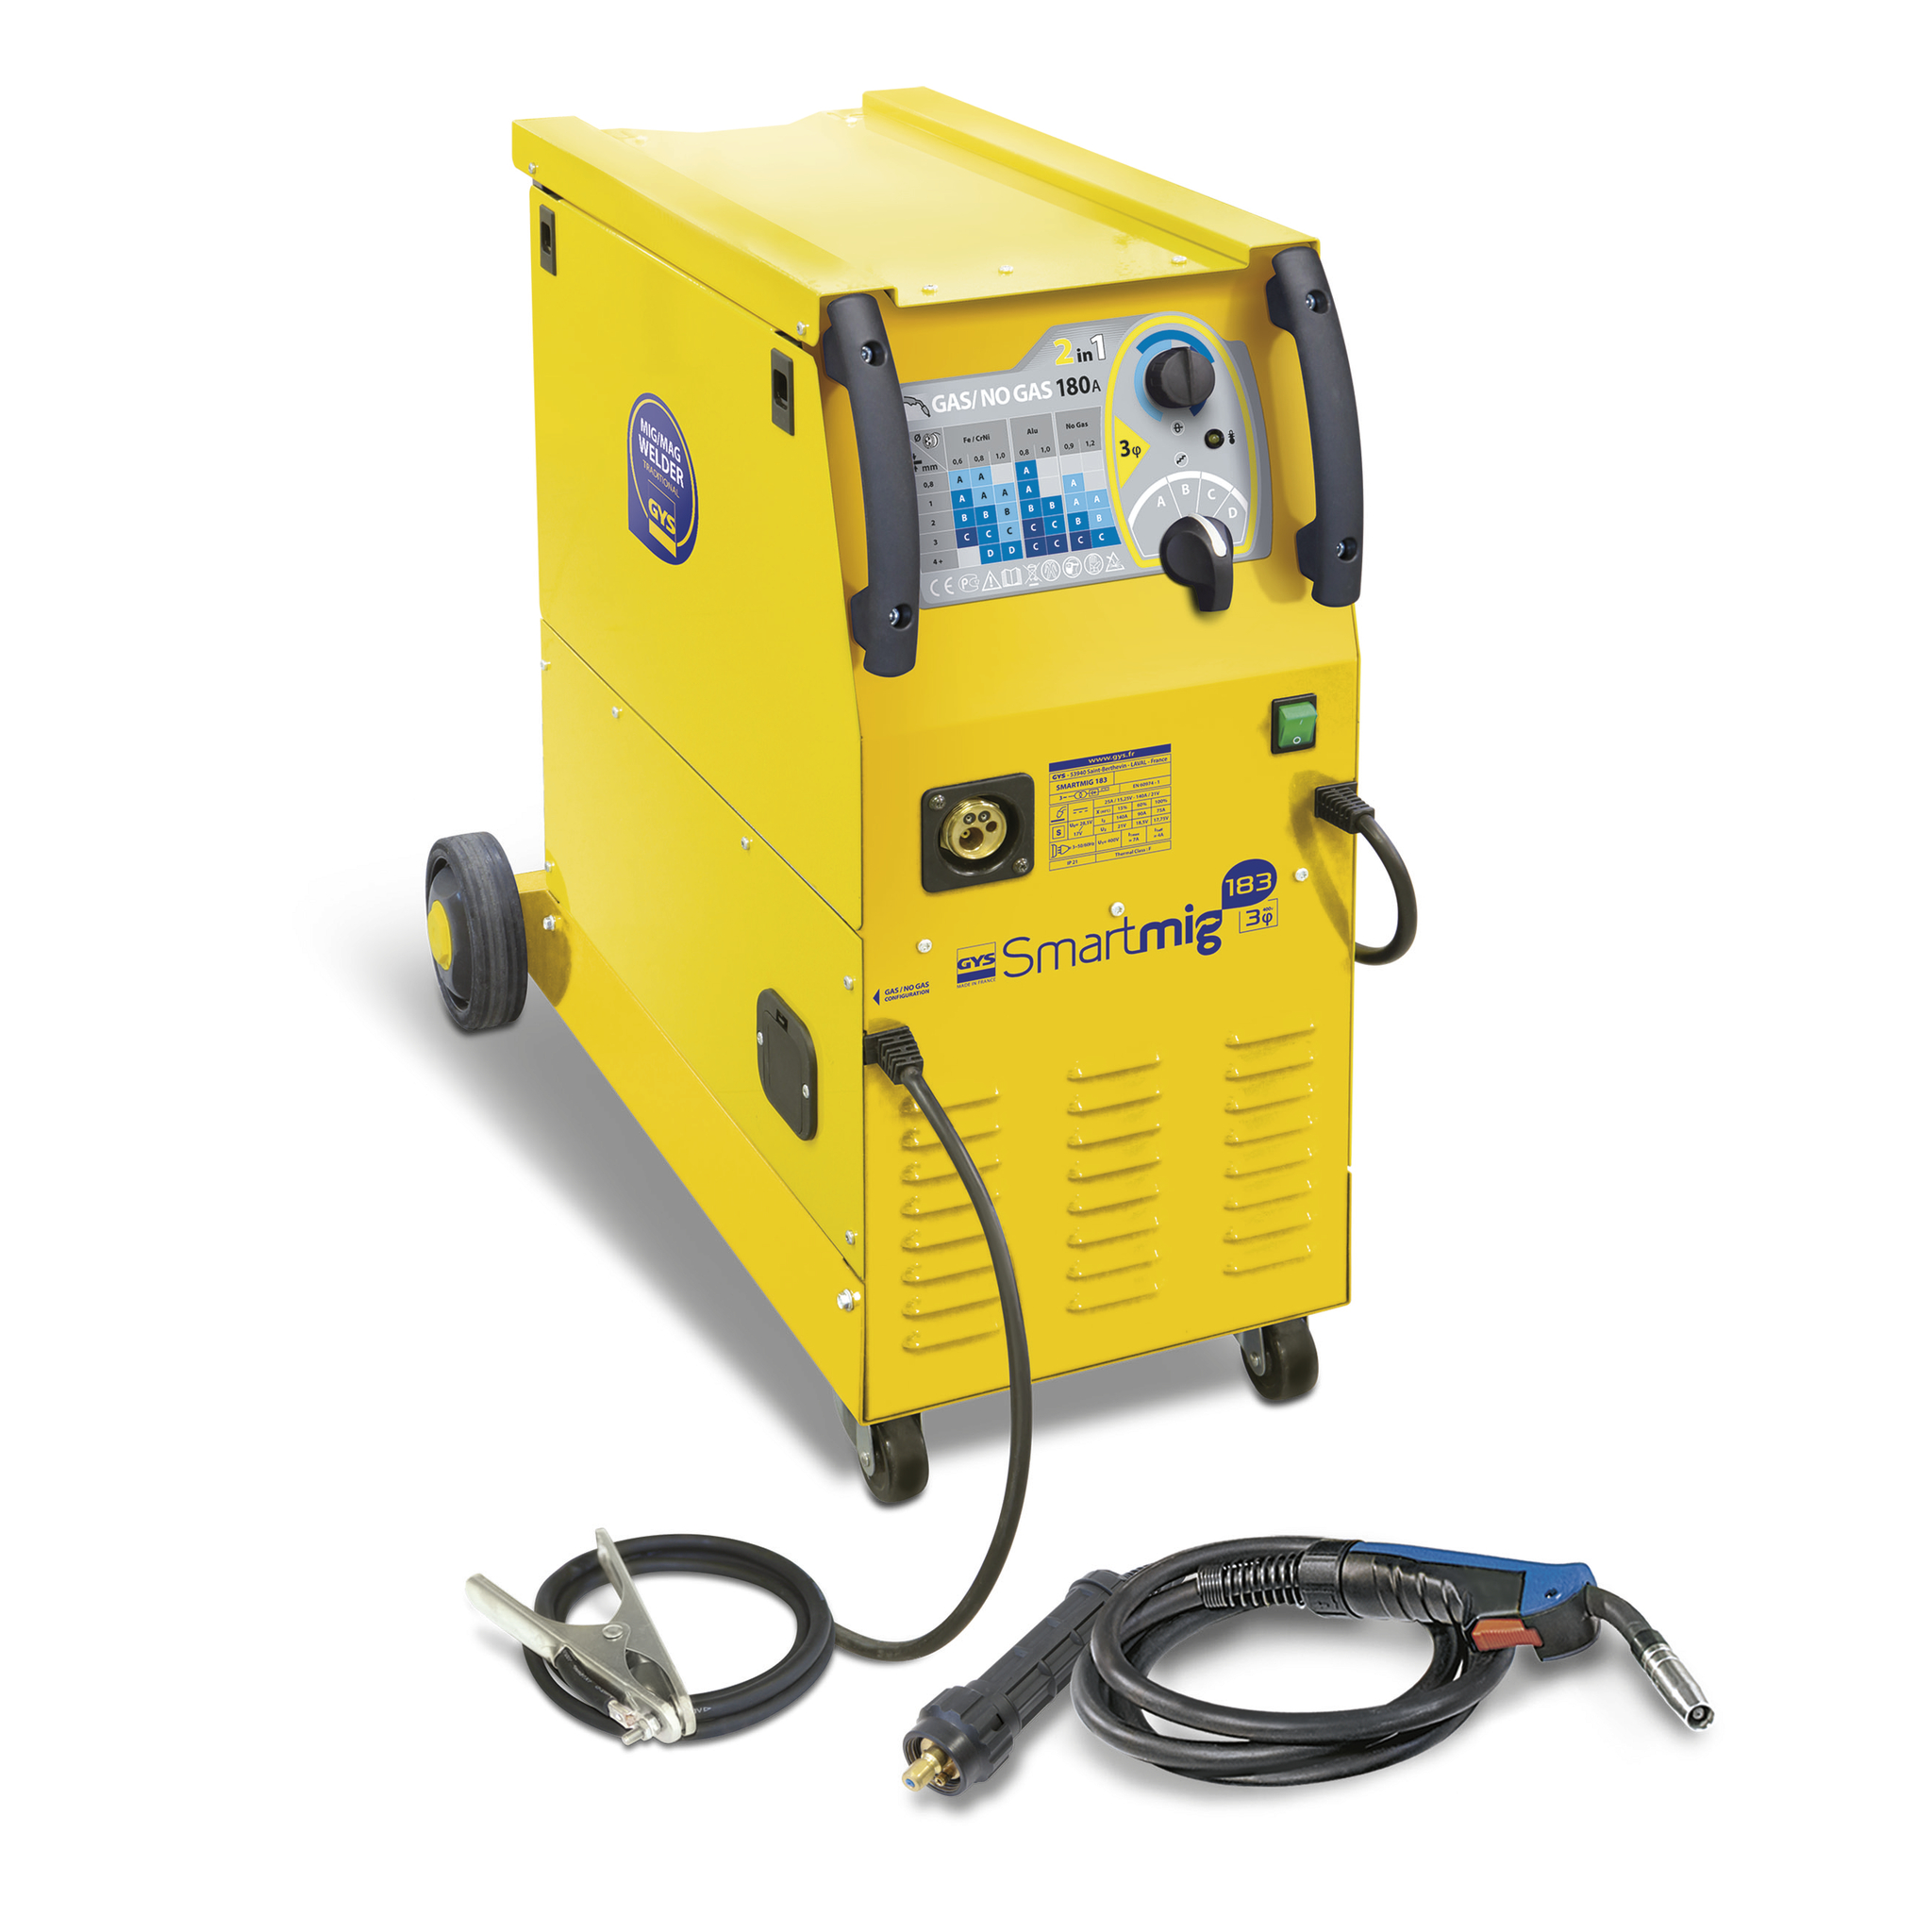 250a Acdc Tig Inverter 220v Tradeweld further Revco Bc5w Bk Bsx Black Red Flame Logo Armorcap Welding Cap moreover Star Picket Driver also IP320 in addition 171380636448. on migwelders